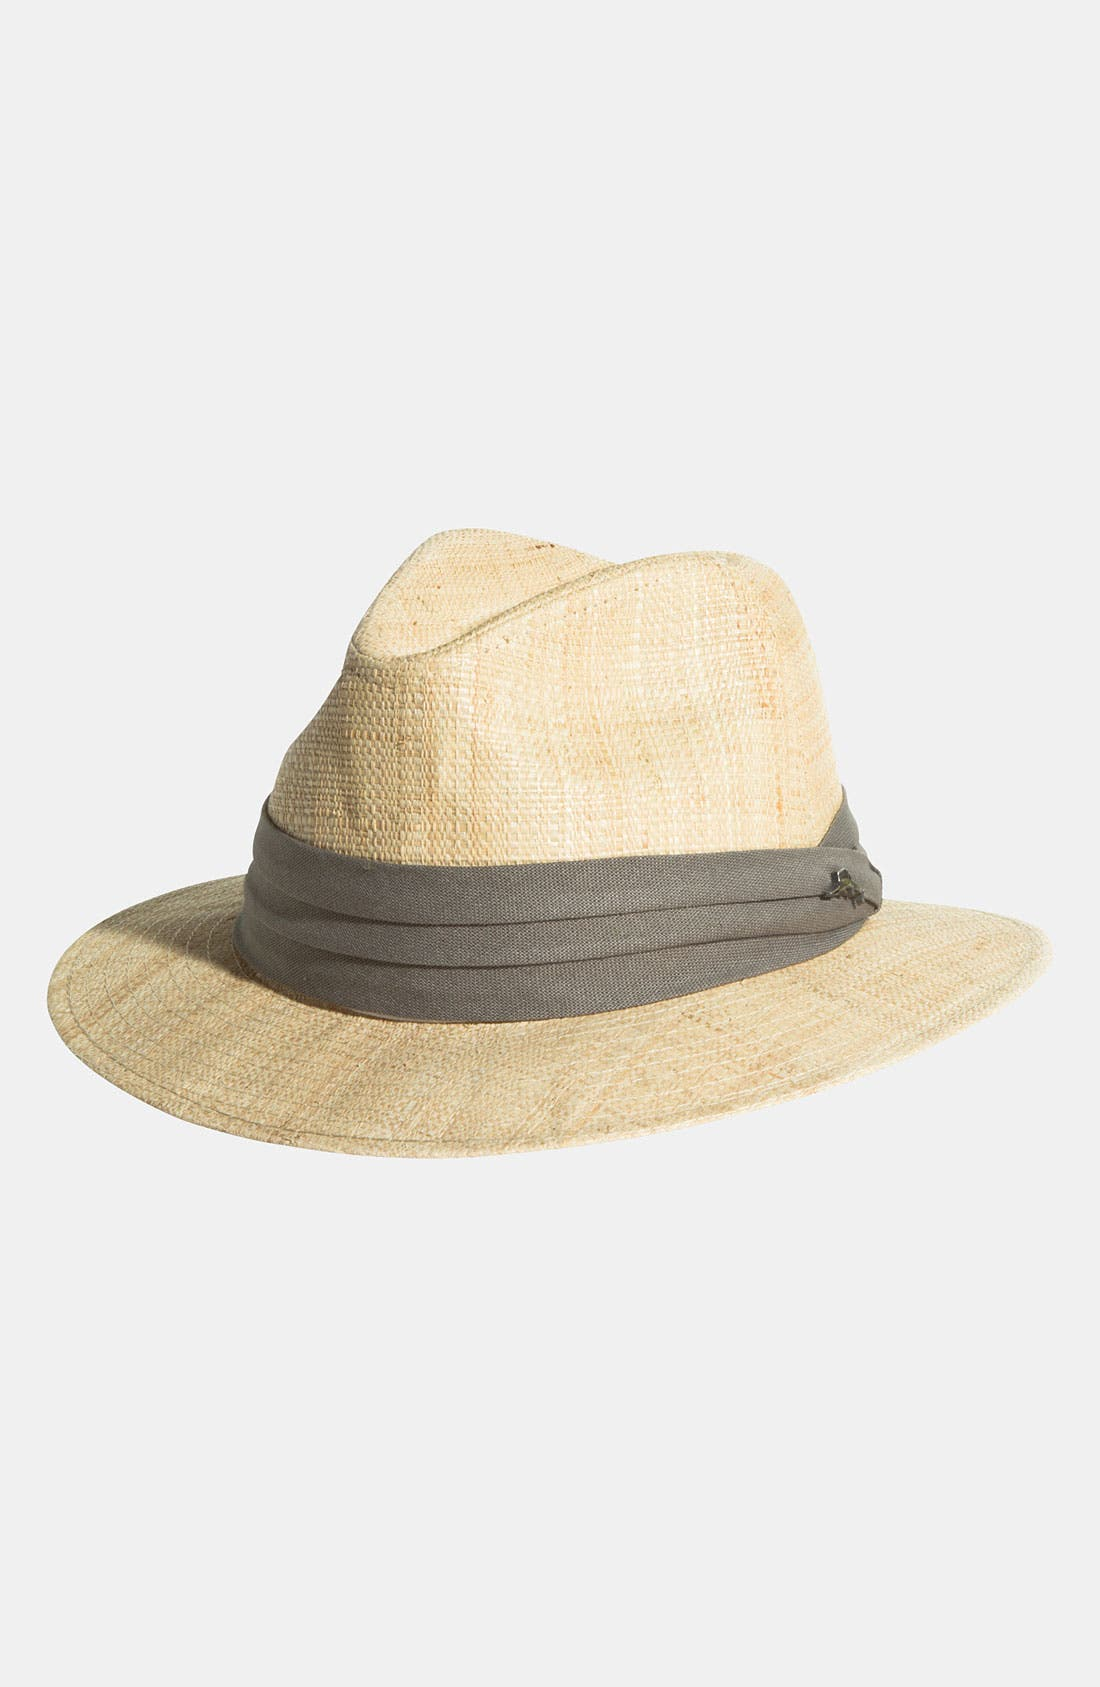 Main Image - Tommy Bahama 'Rough Cotton' Raffia Fedora